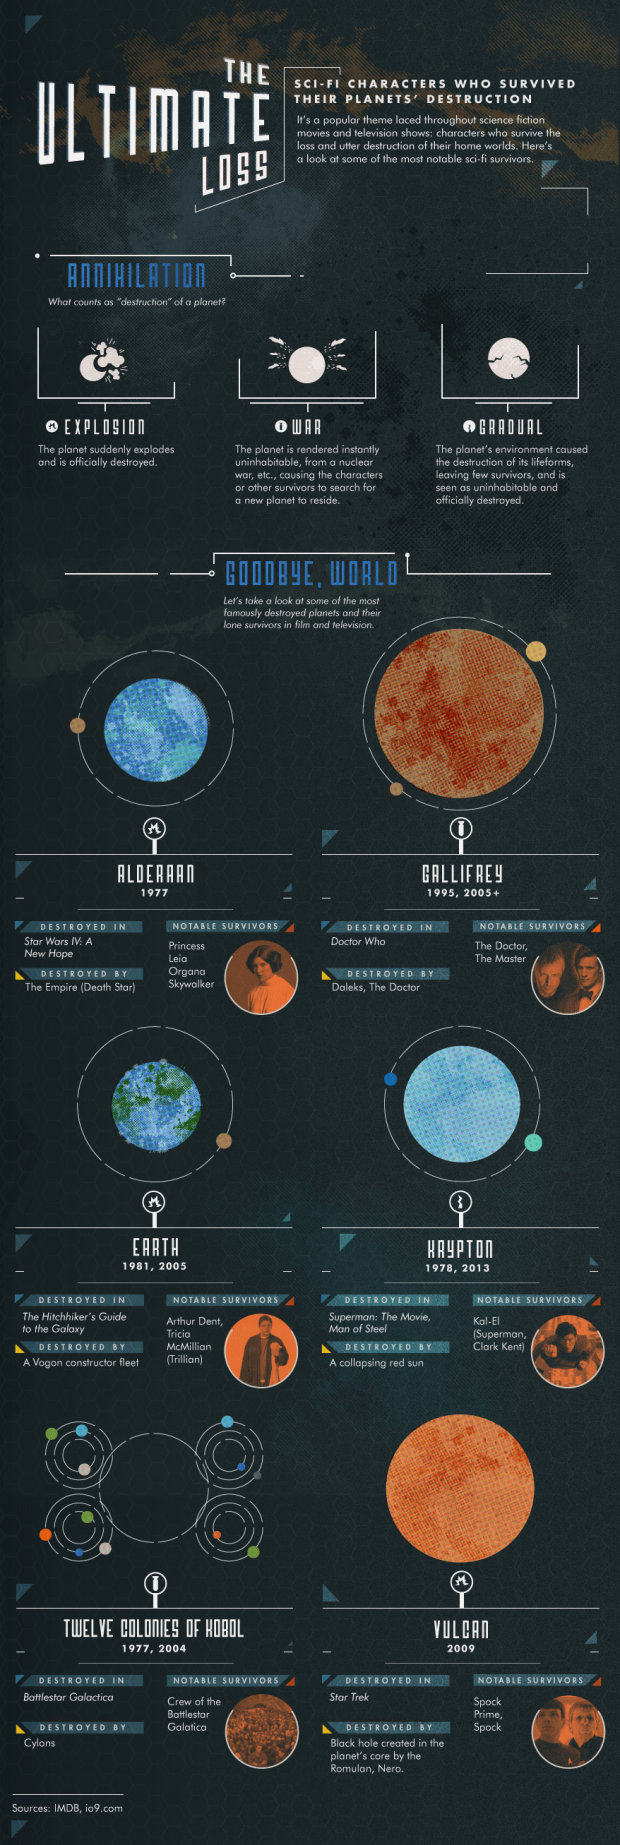 Confused-the-ultimate-loss-planets-destroyed